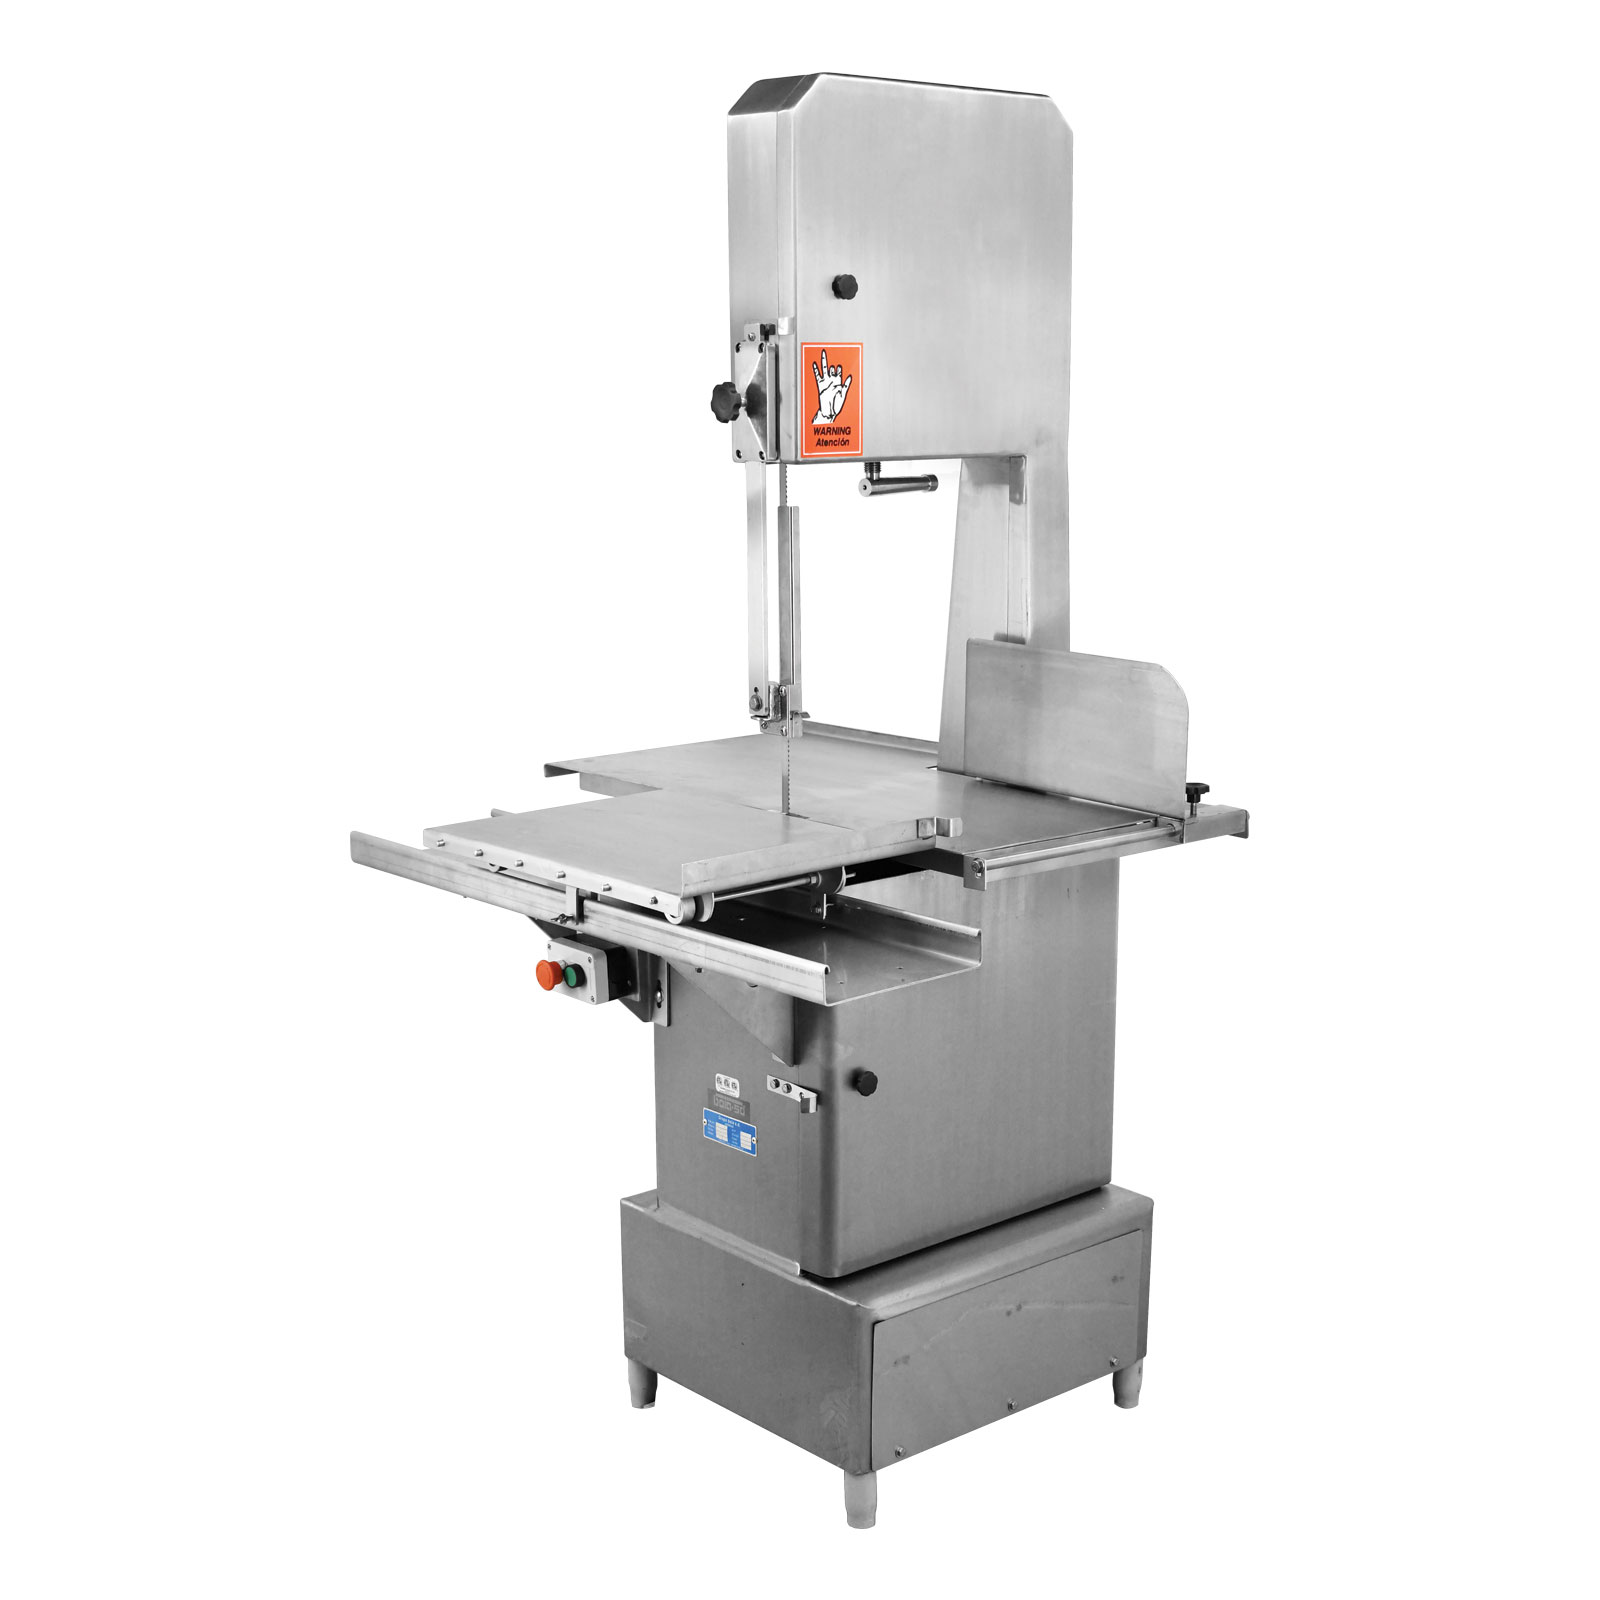 Omcan BS-VE-3200-SS food equipment > band saws and blades > floor band saws